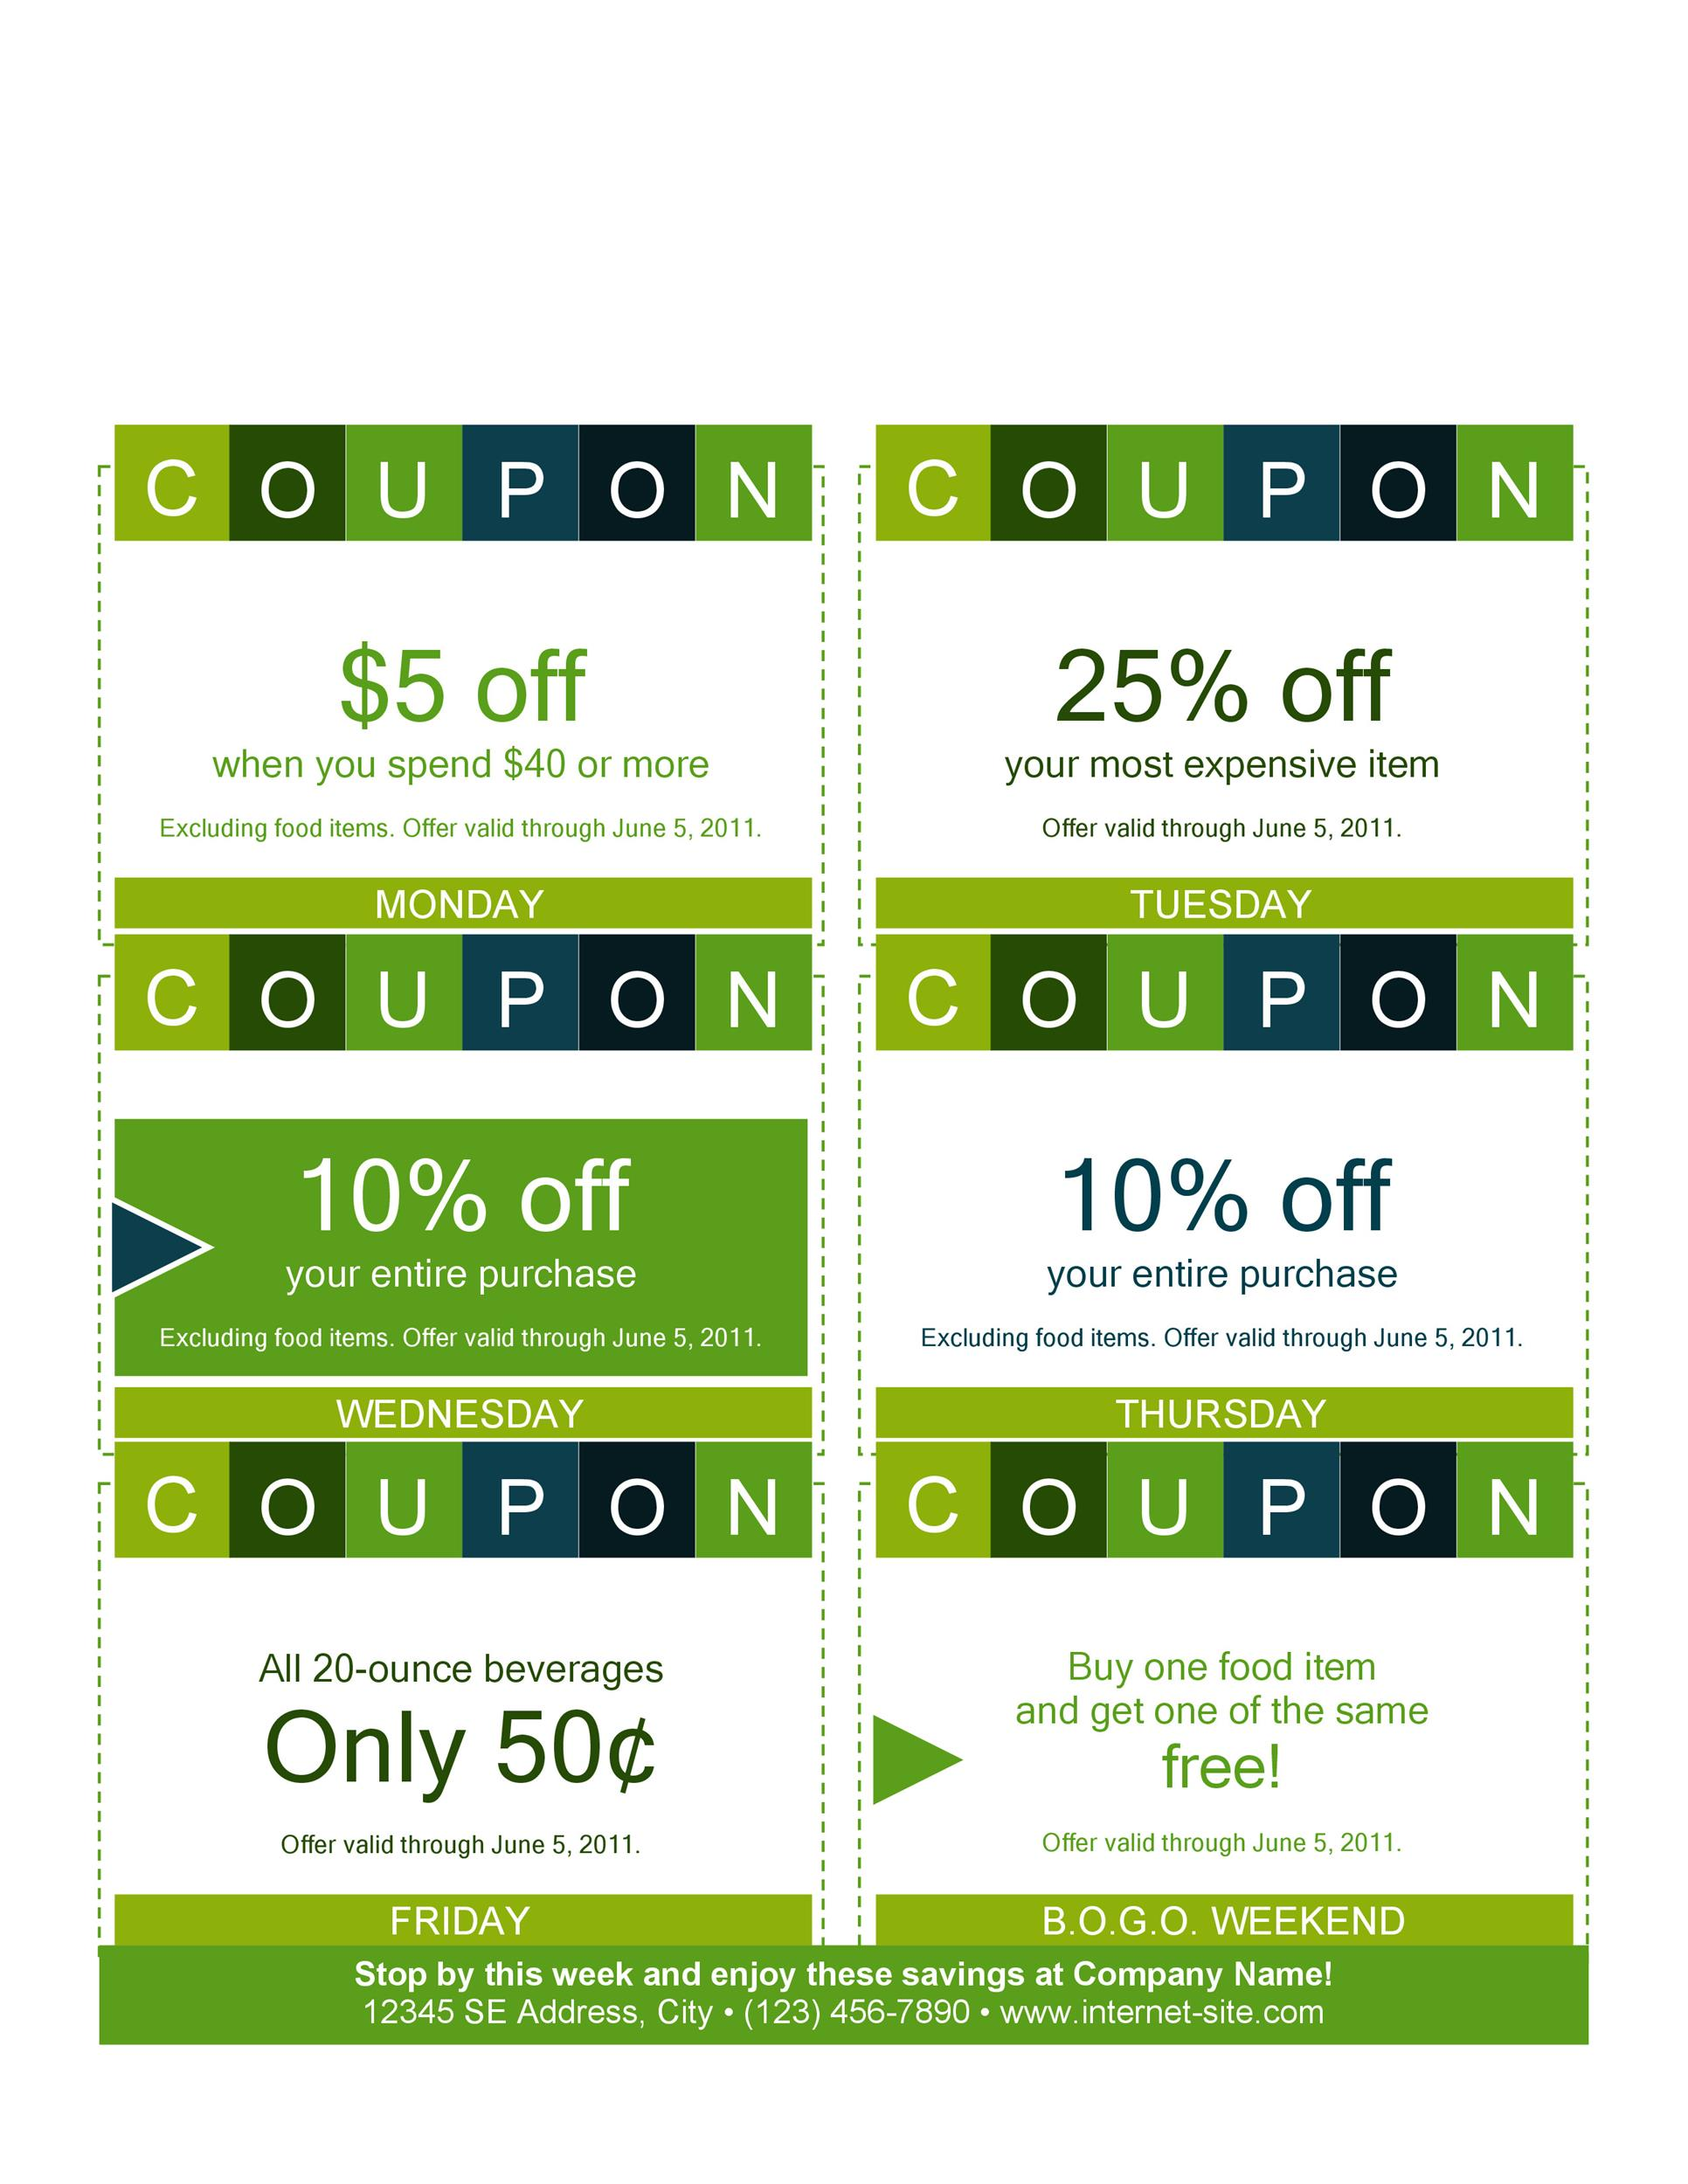 discount coupon examples